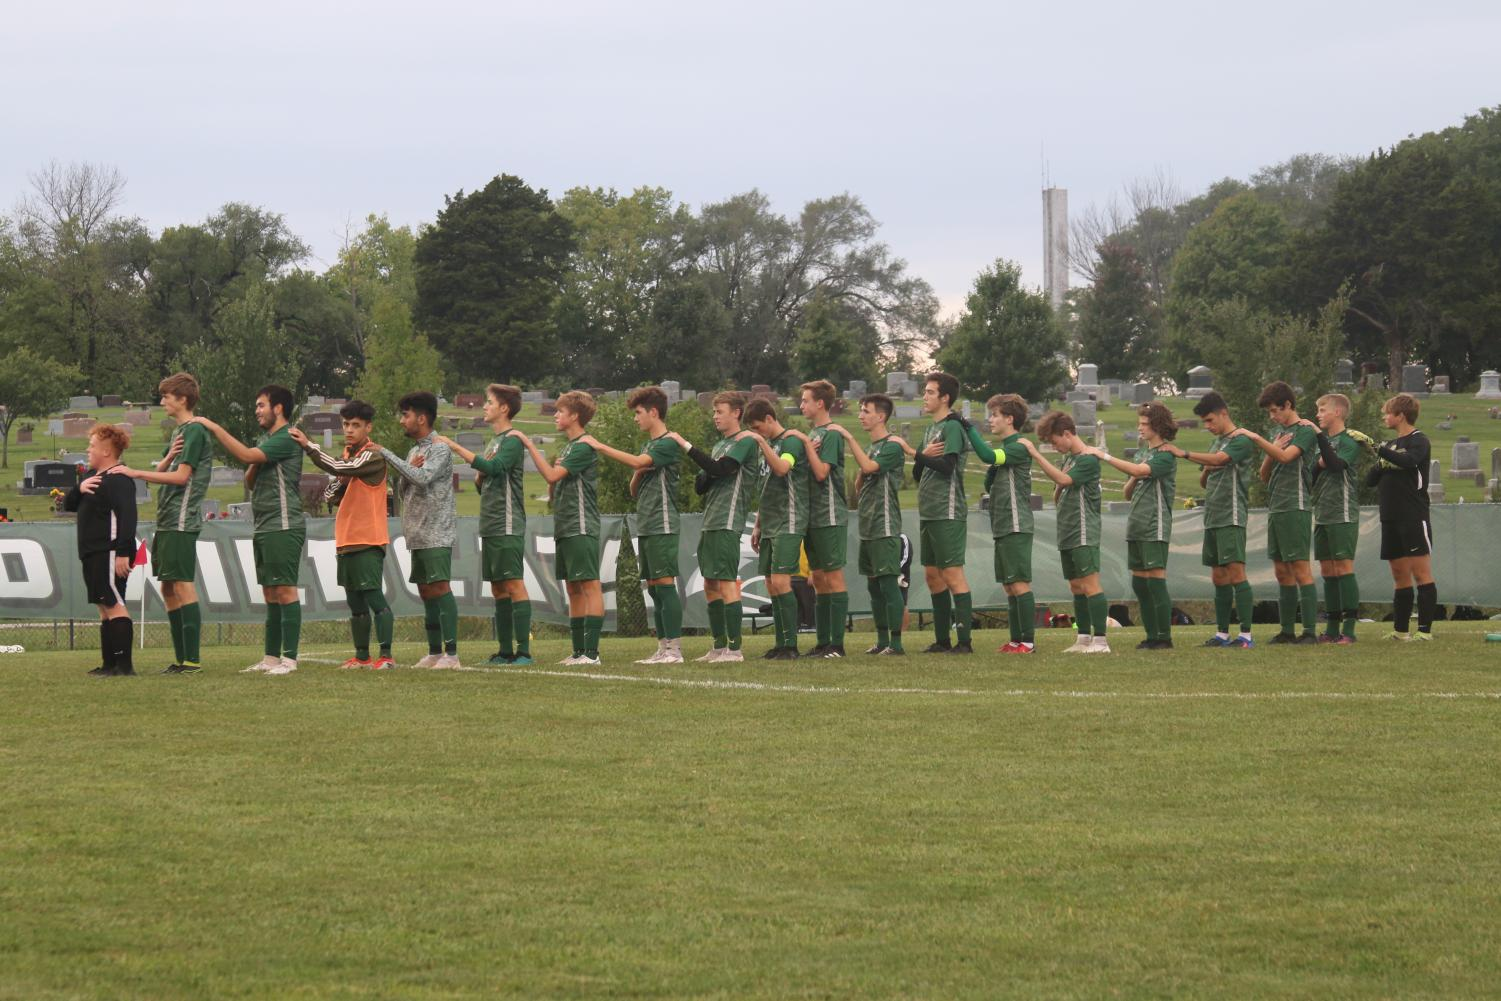 The+boys%27+soccer+roster+lines+up+at+midfield+for+the+National+Anthem+prior+to+their+game+against+Basehor-Linwood+on+Sept.+25.